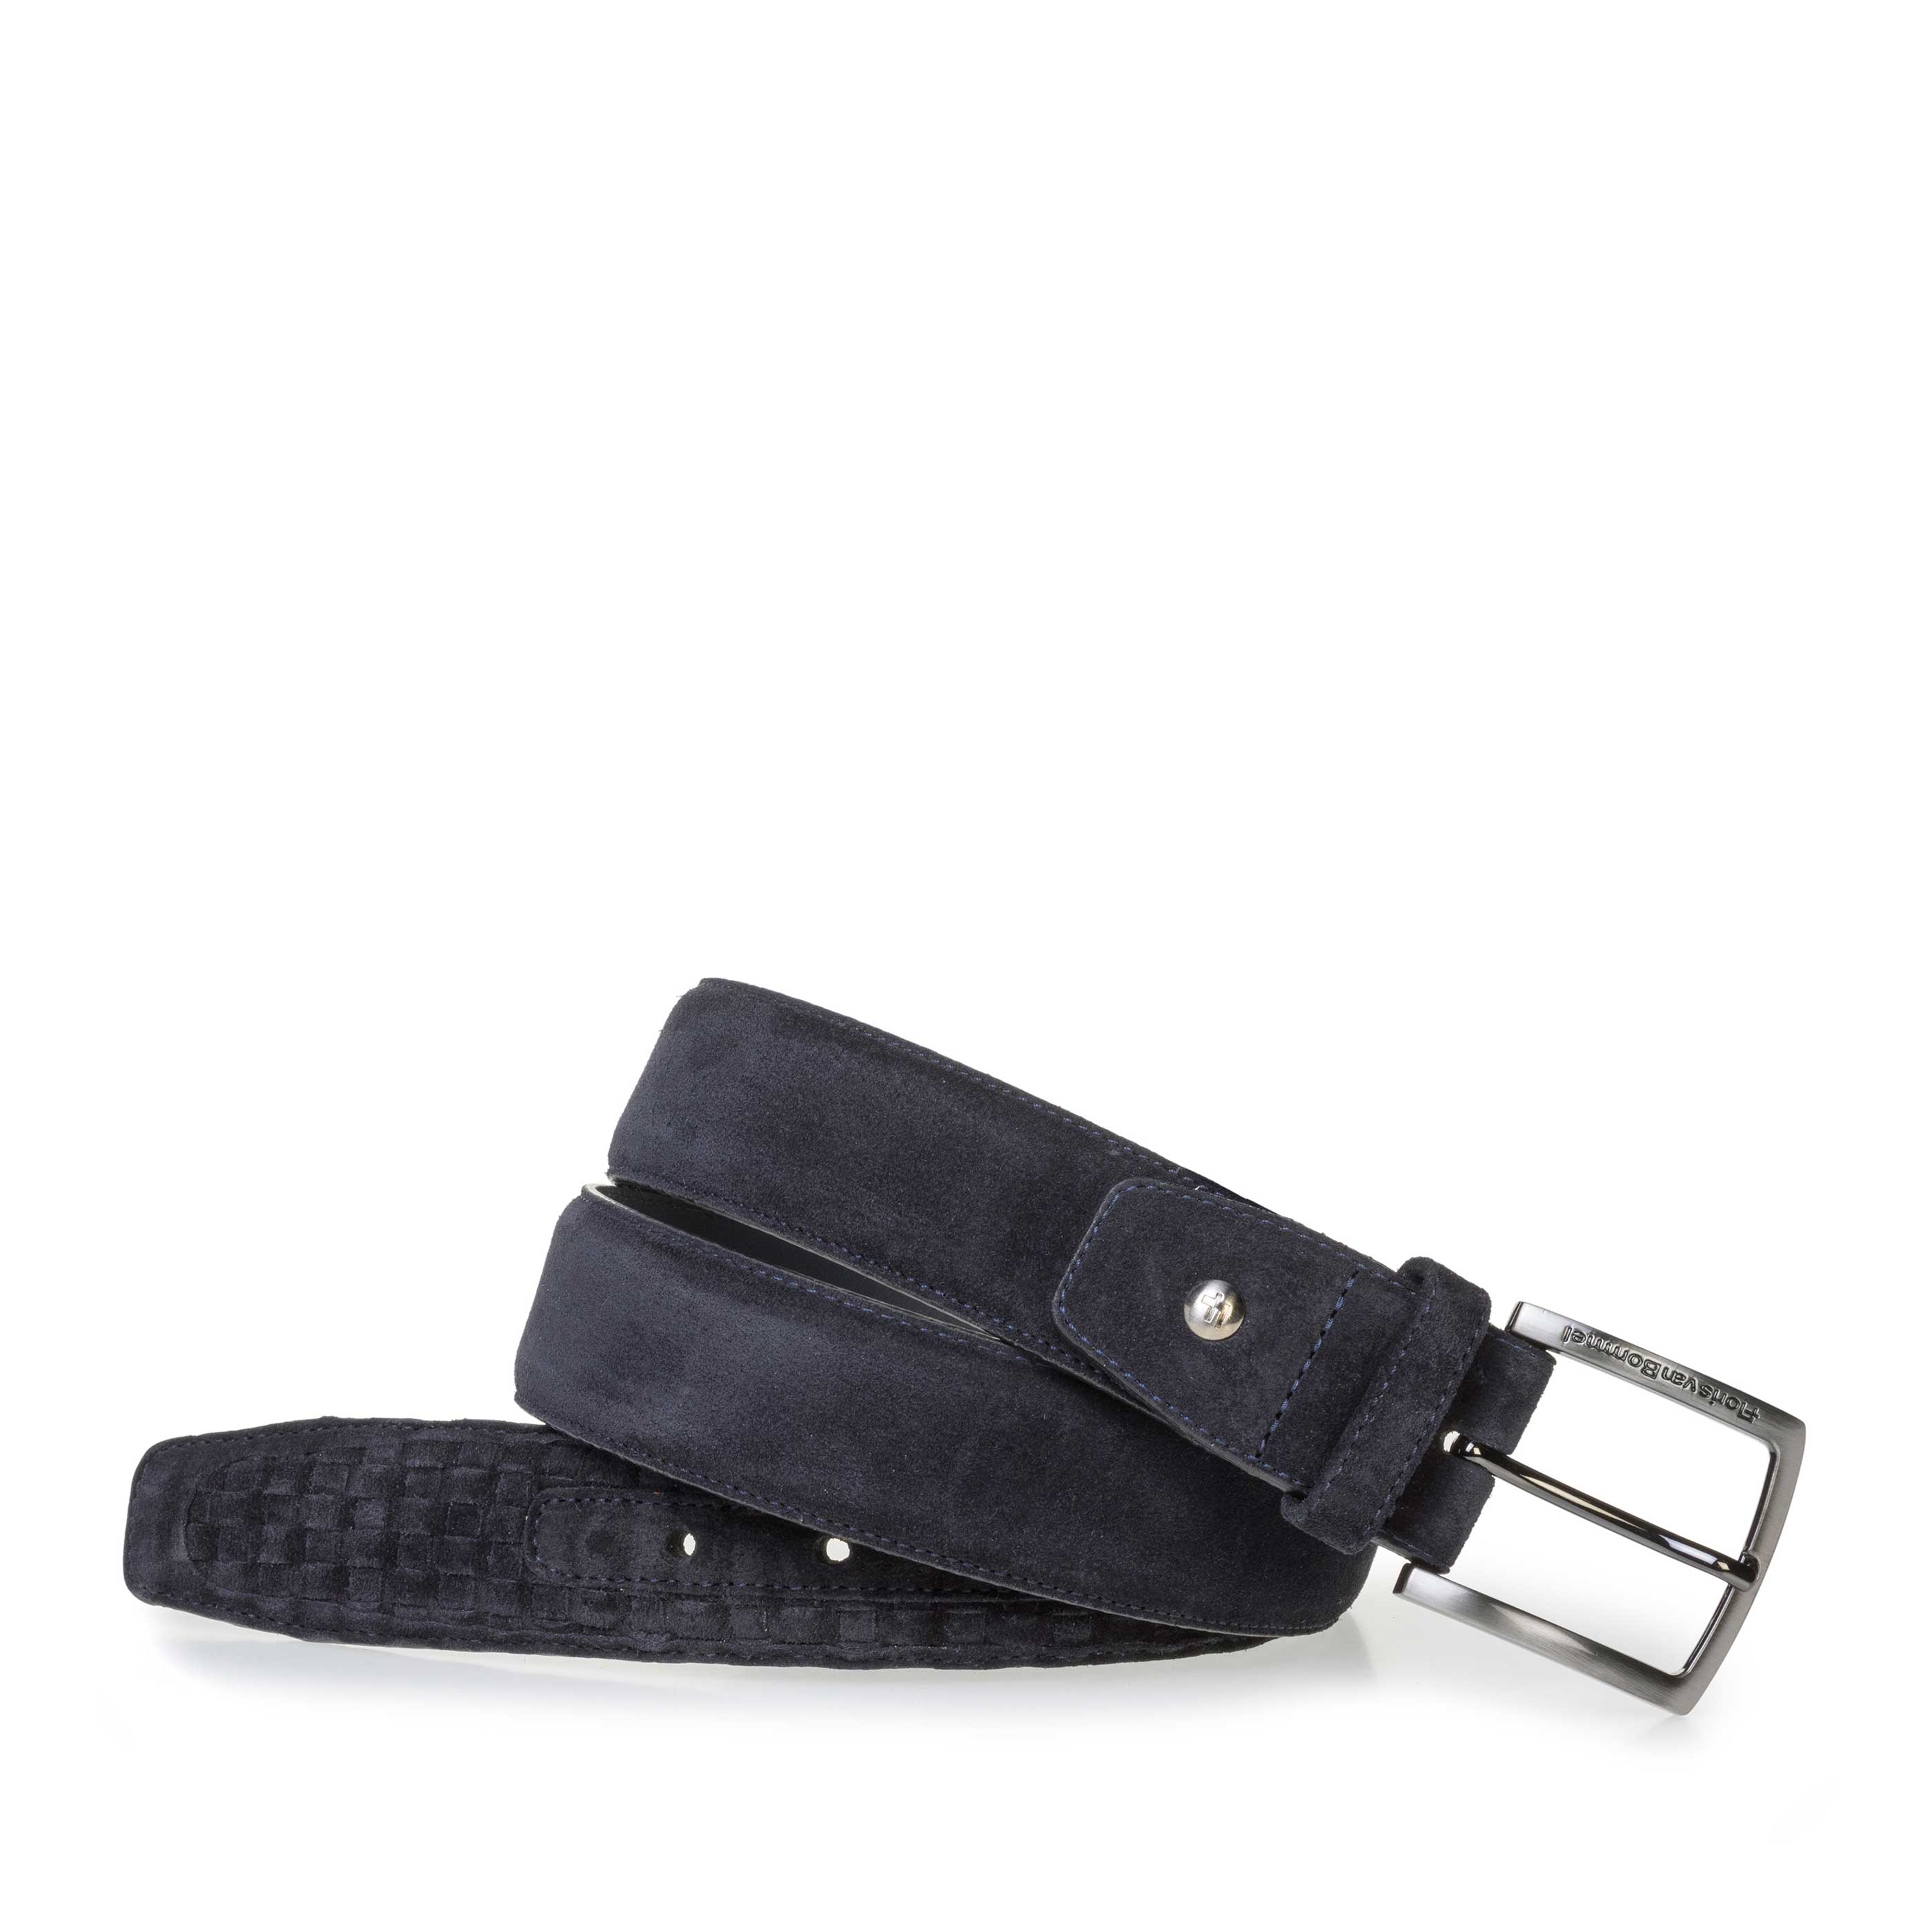 75159/30 - Dark blue braided suede leather belt